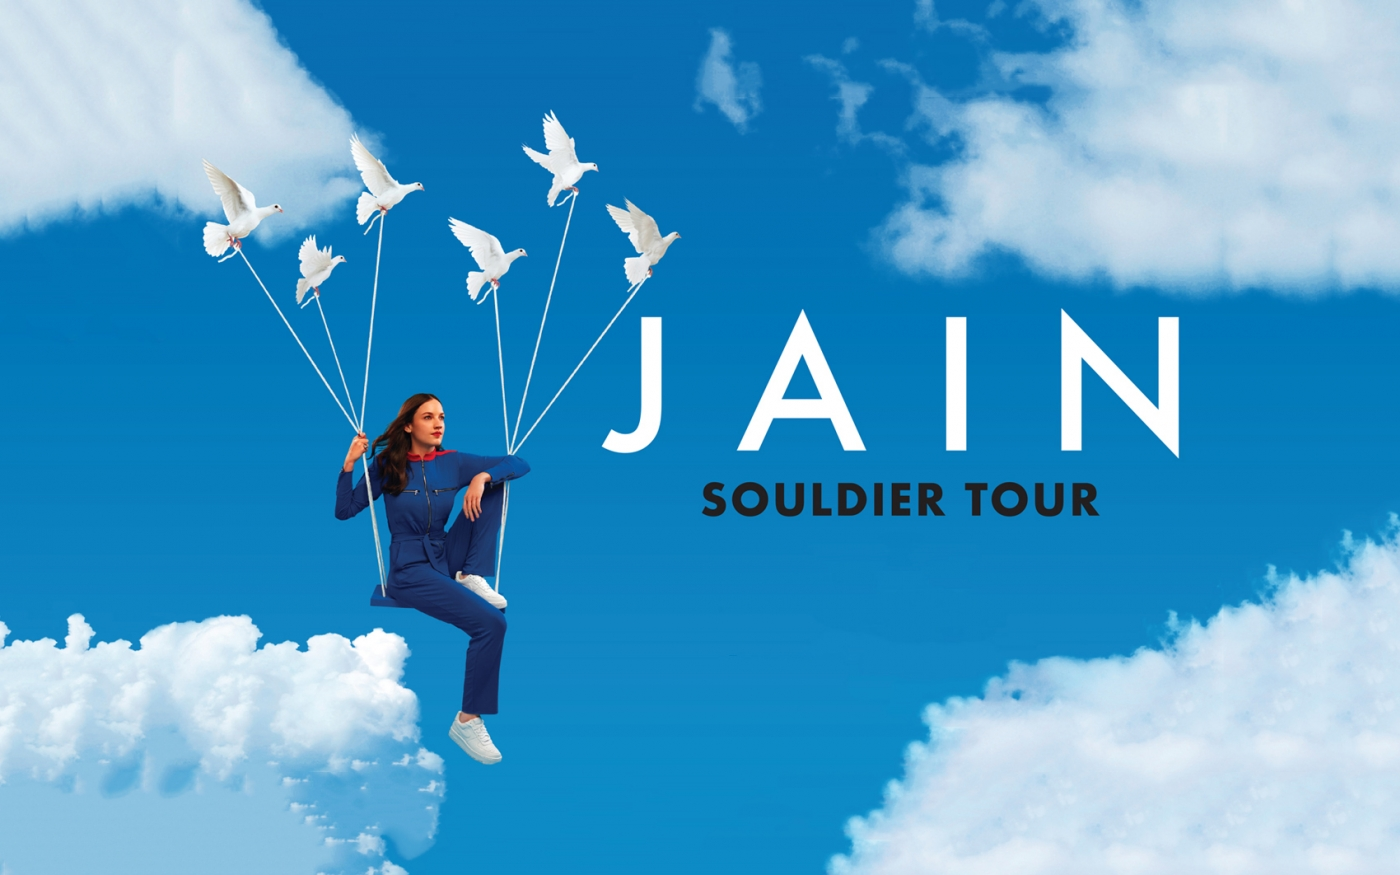 Jain - Souldier Tour